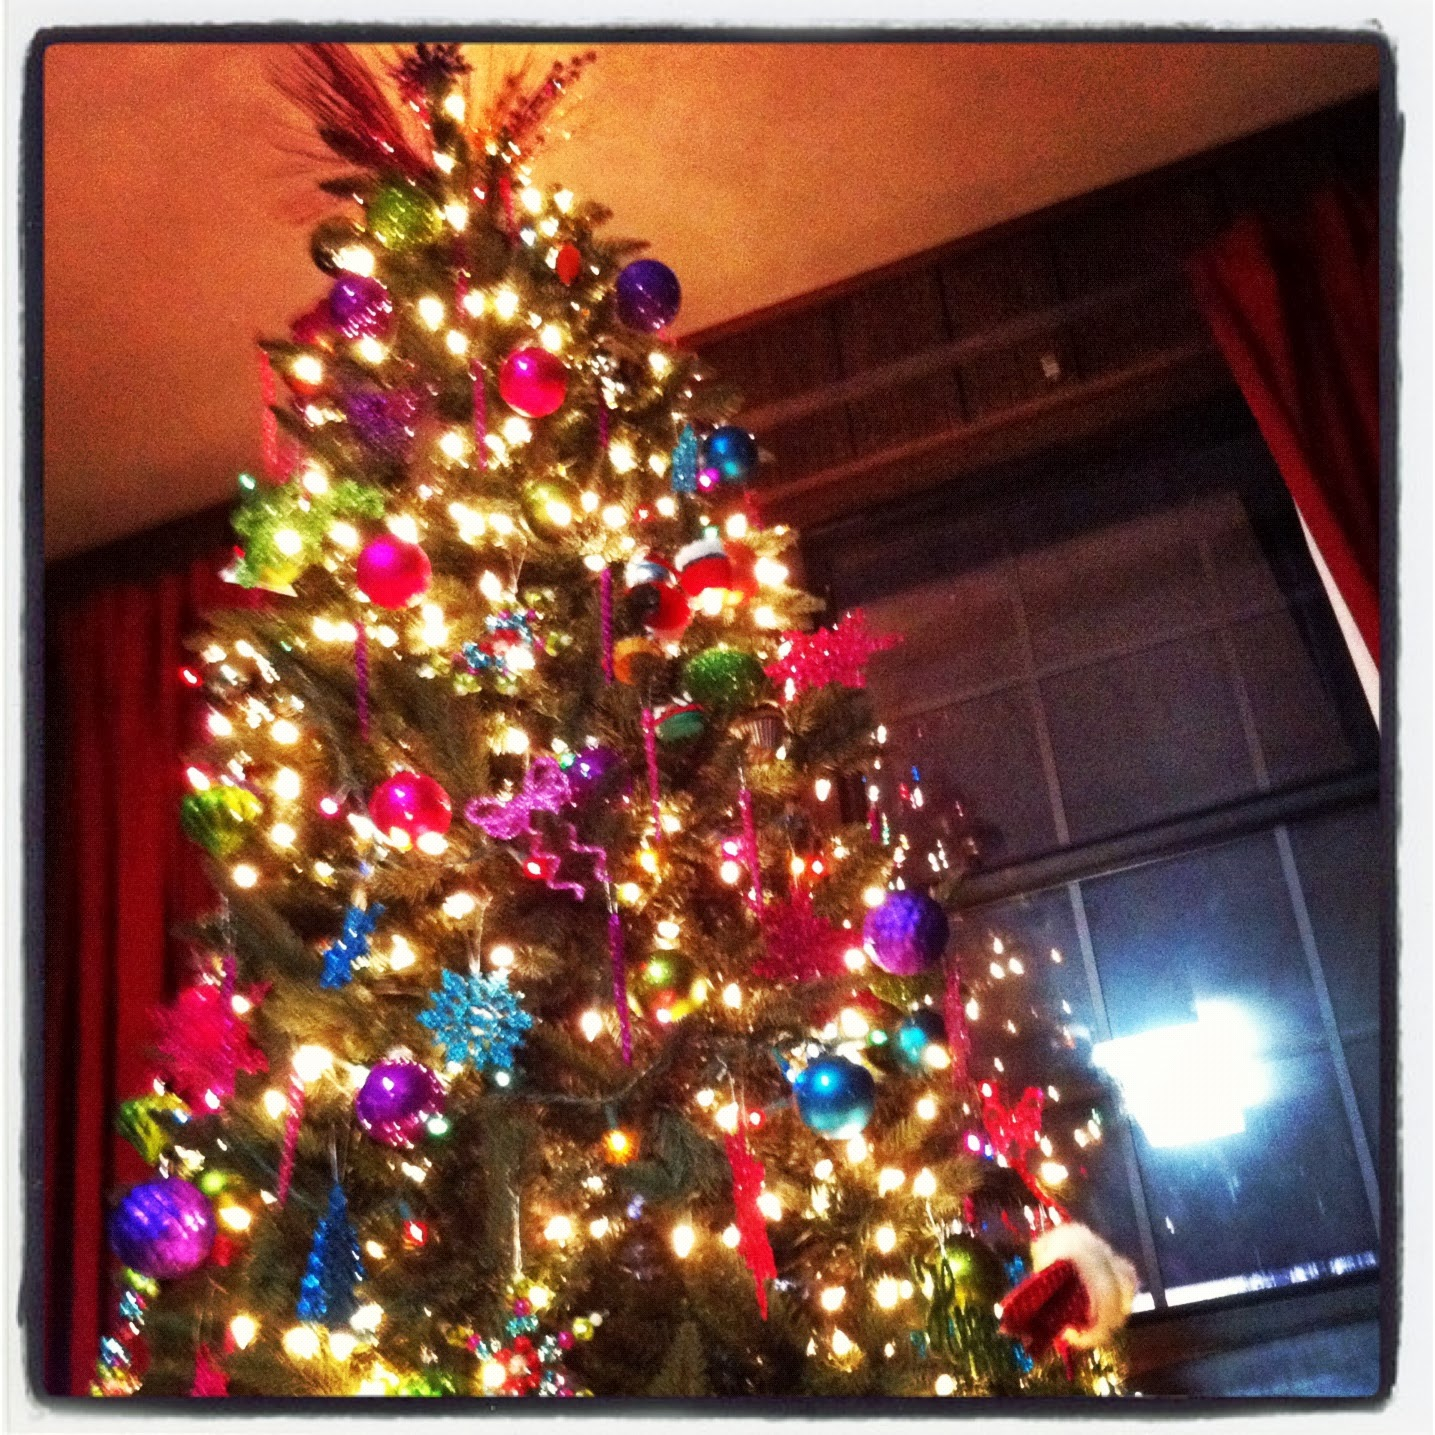 Christmas Tree,Fuchsia, Blue, Shiny, Lights, Christmas